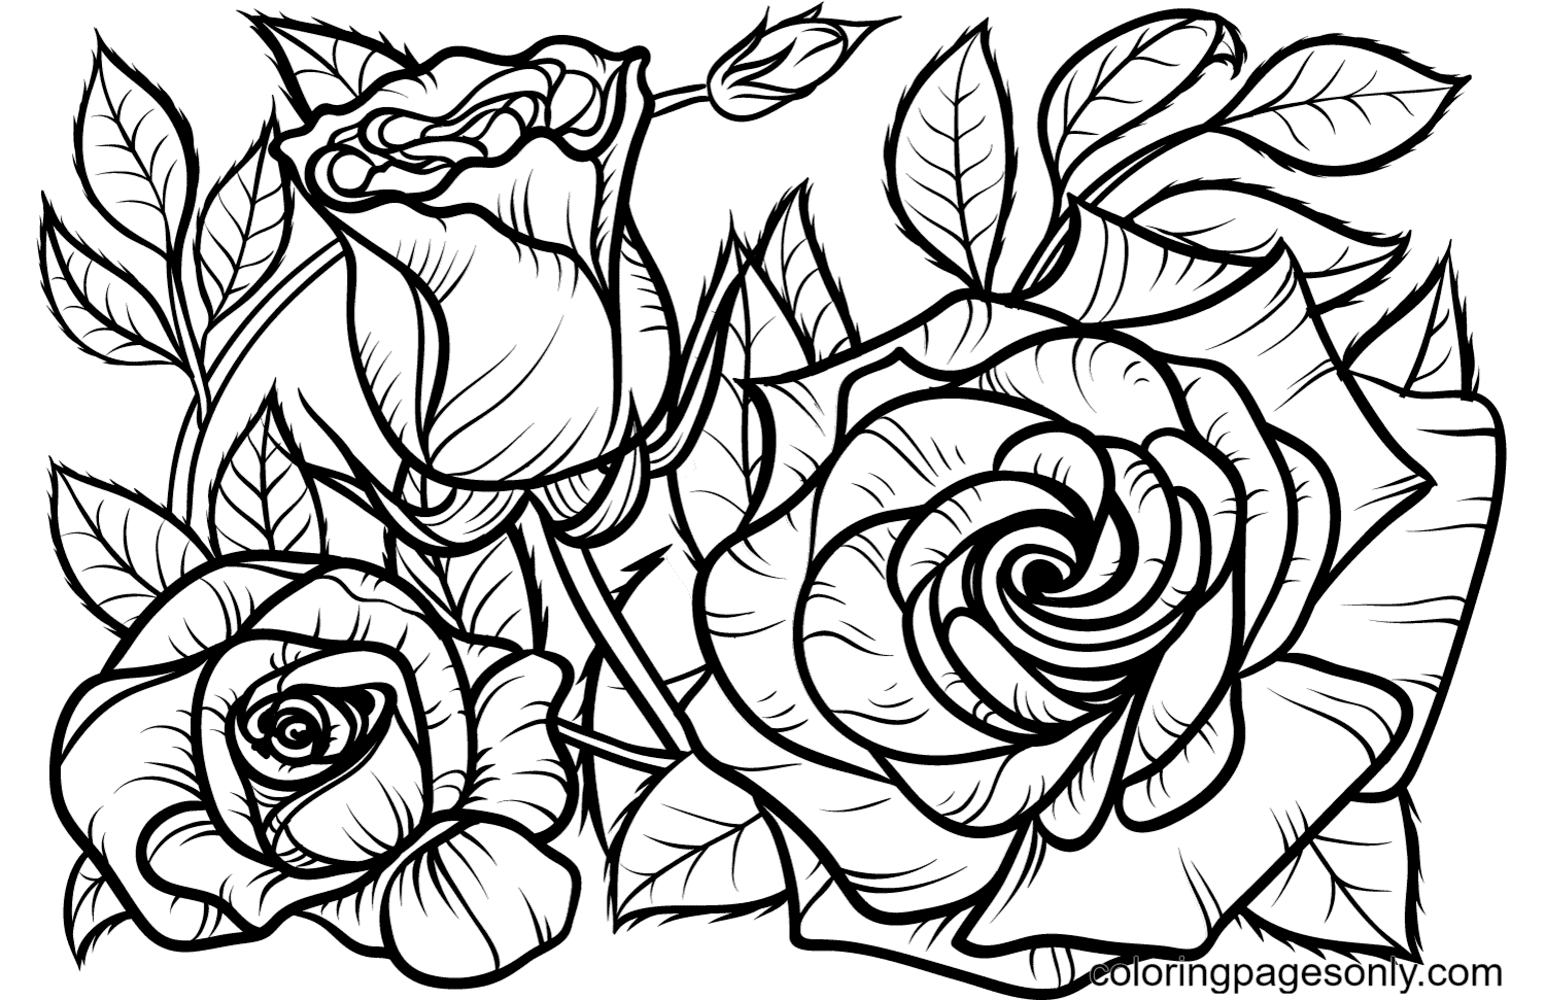 Brilliant Roses Coloring Page